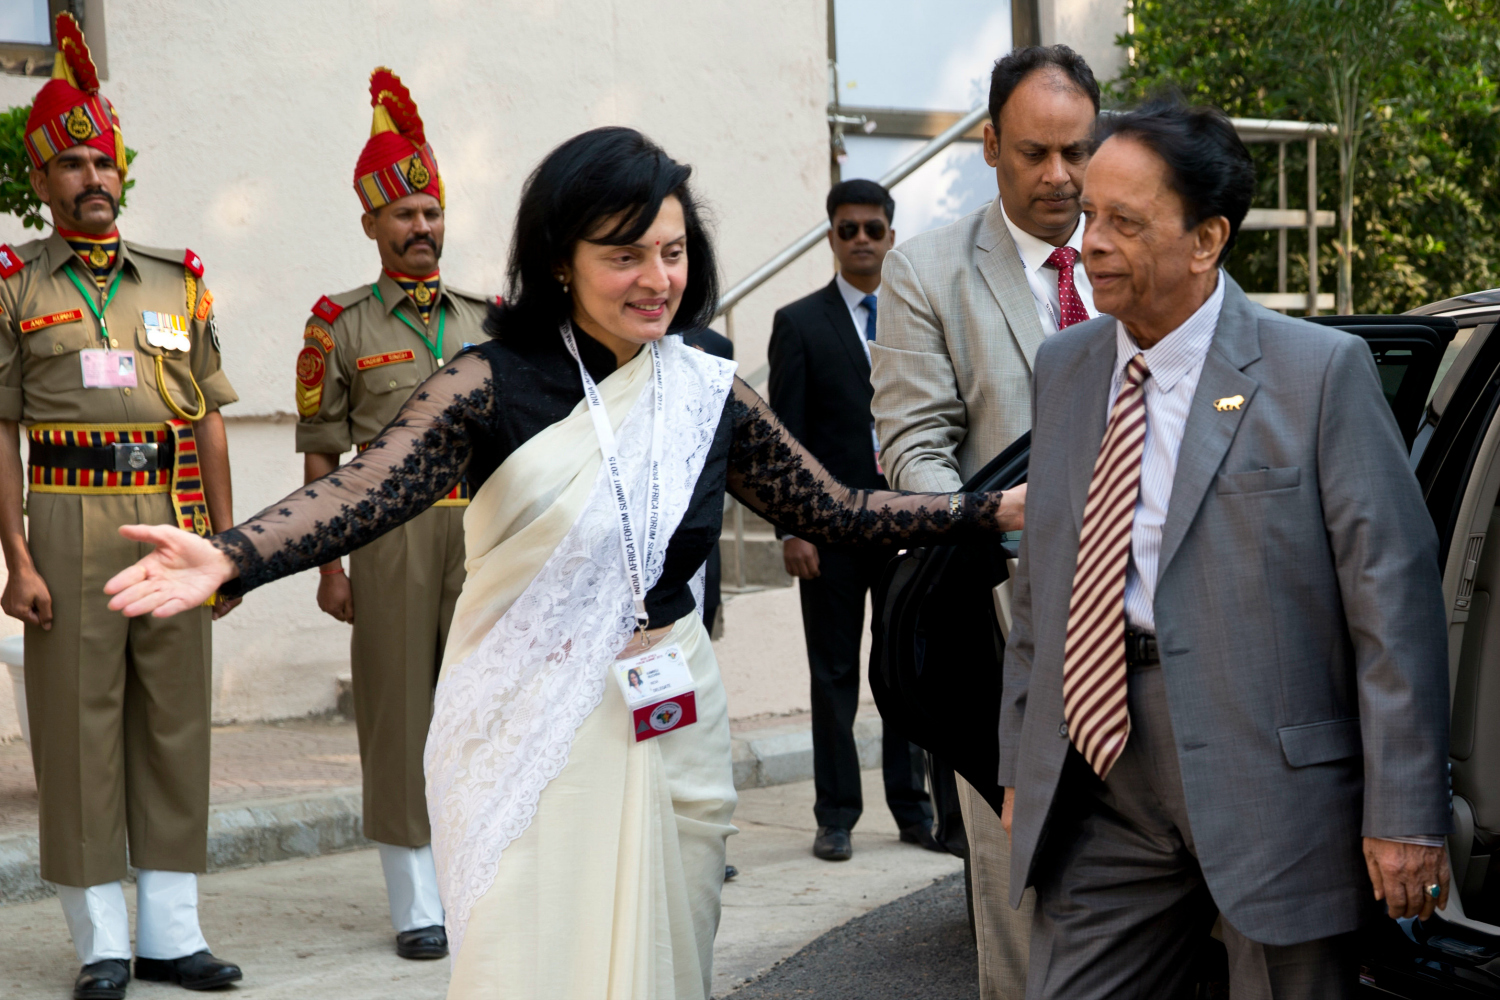 Mauritian Prime Minister Anerood Jugnauth arrives in New Delhi.